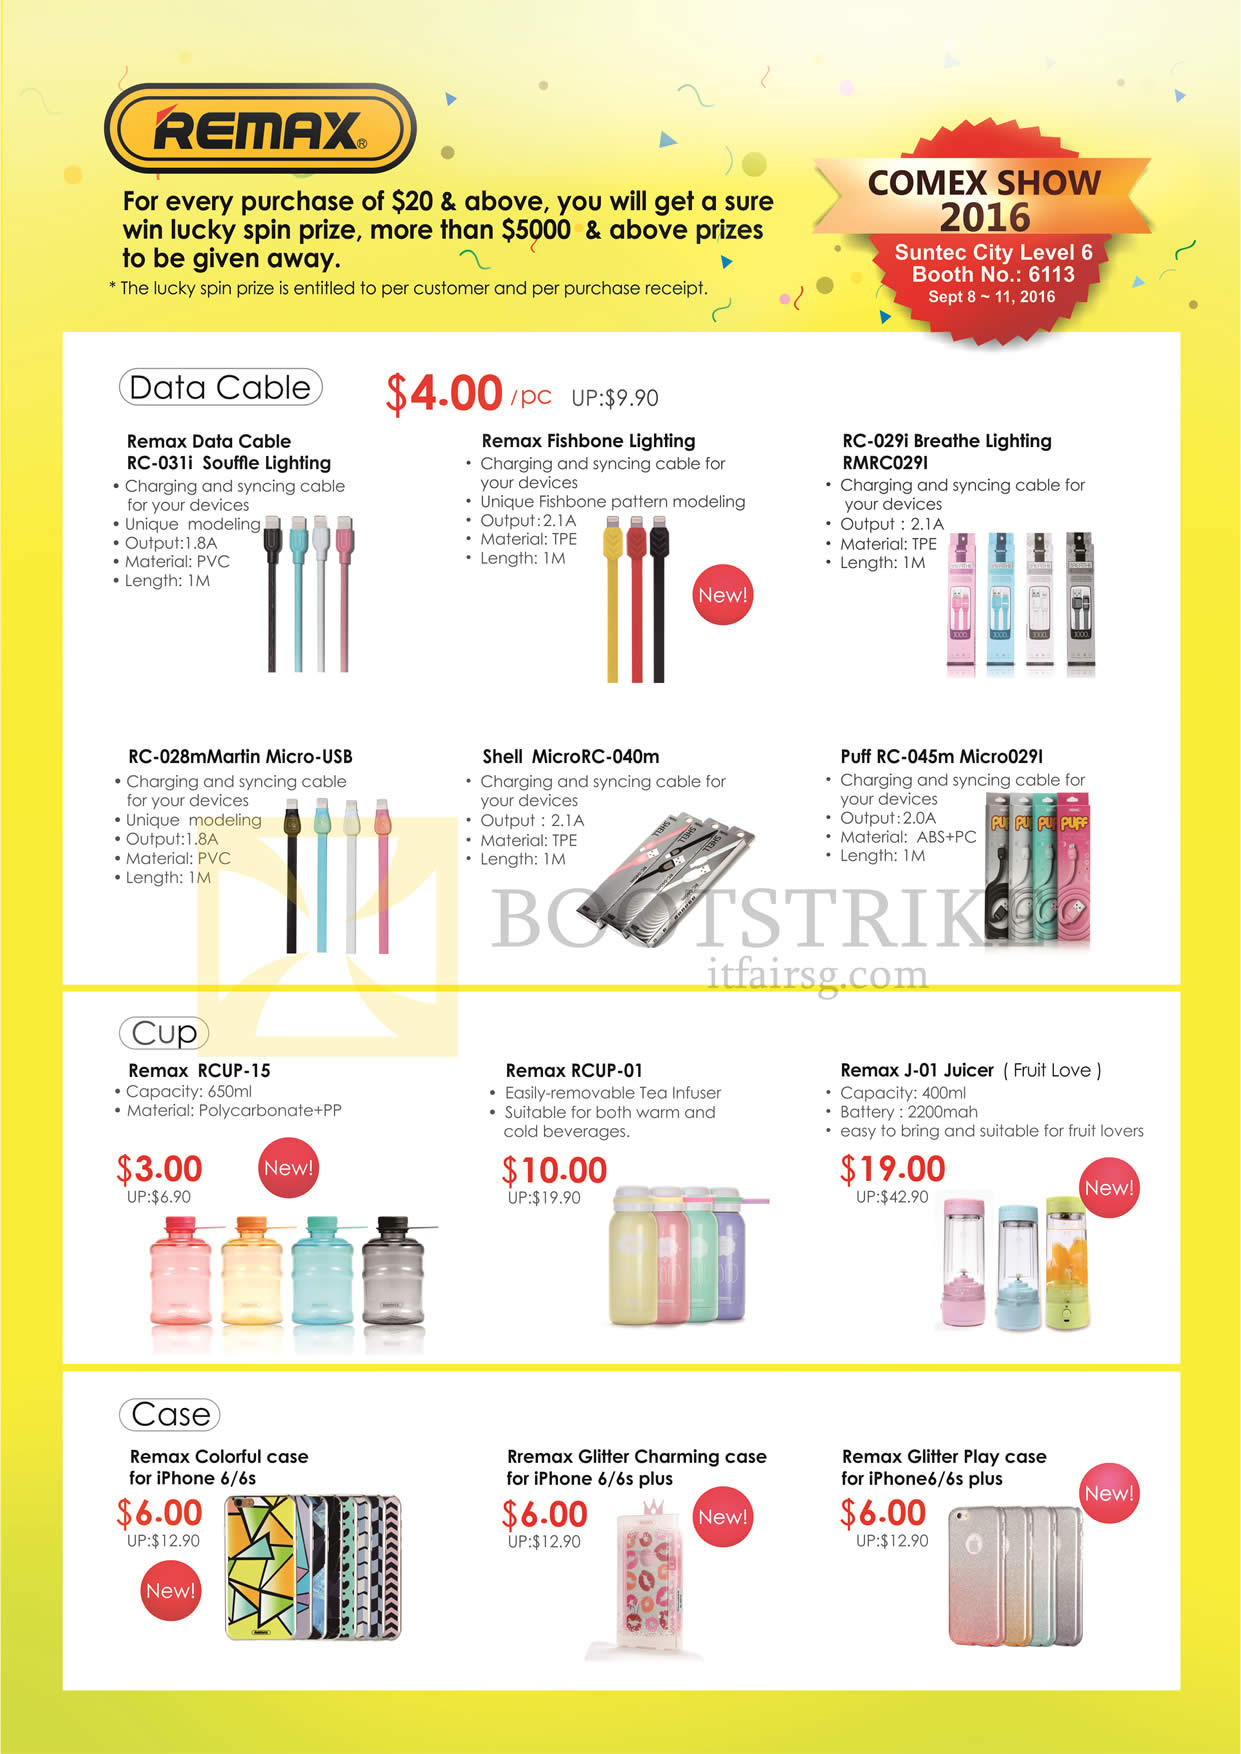 COMEX 2016 price list image brochure of Sprint-Cass Remax Data Cables, Lightning, Fishbone, Breathe, Case, Glitter, Play